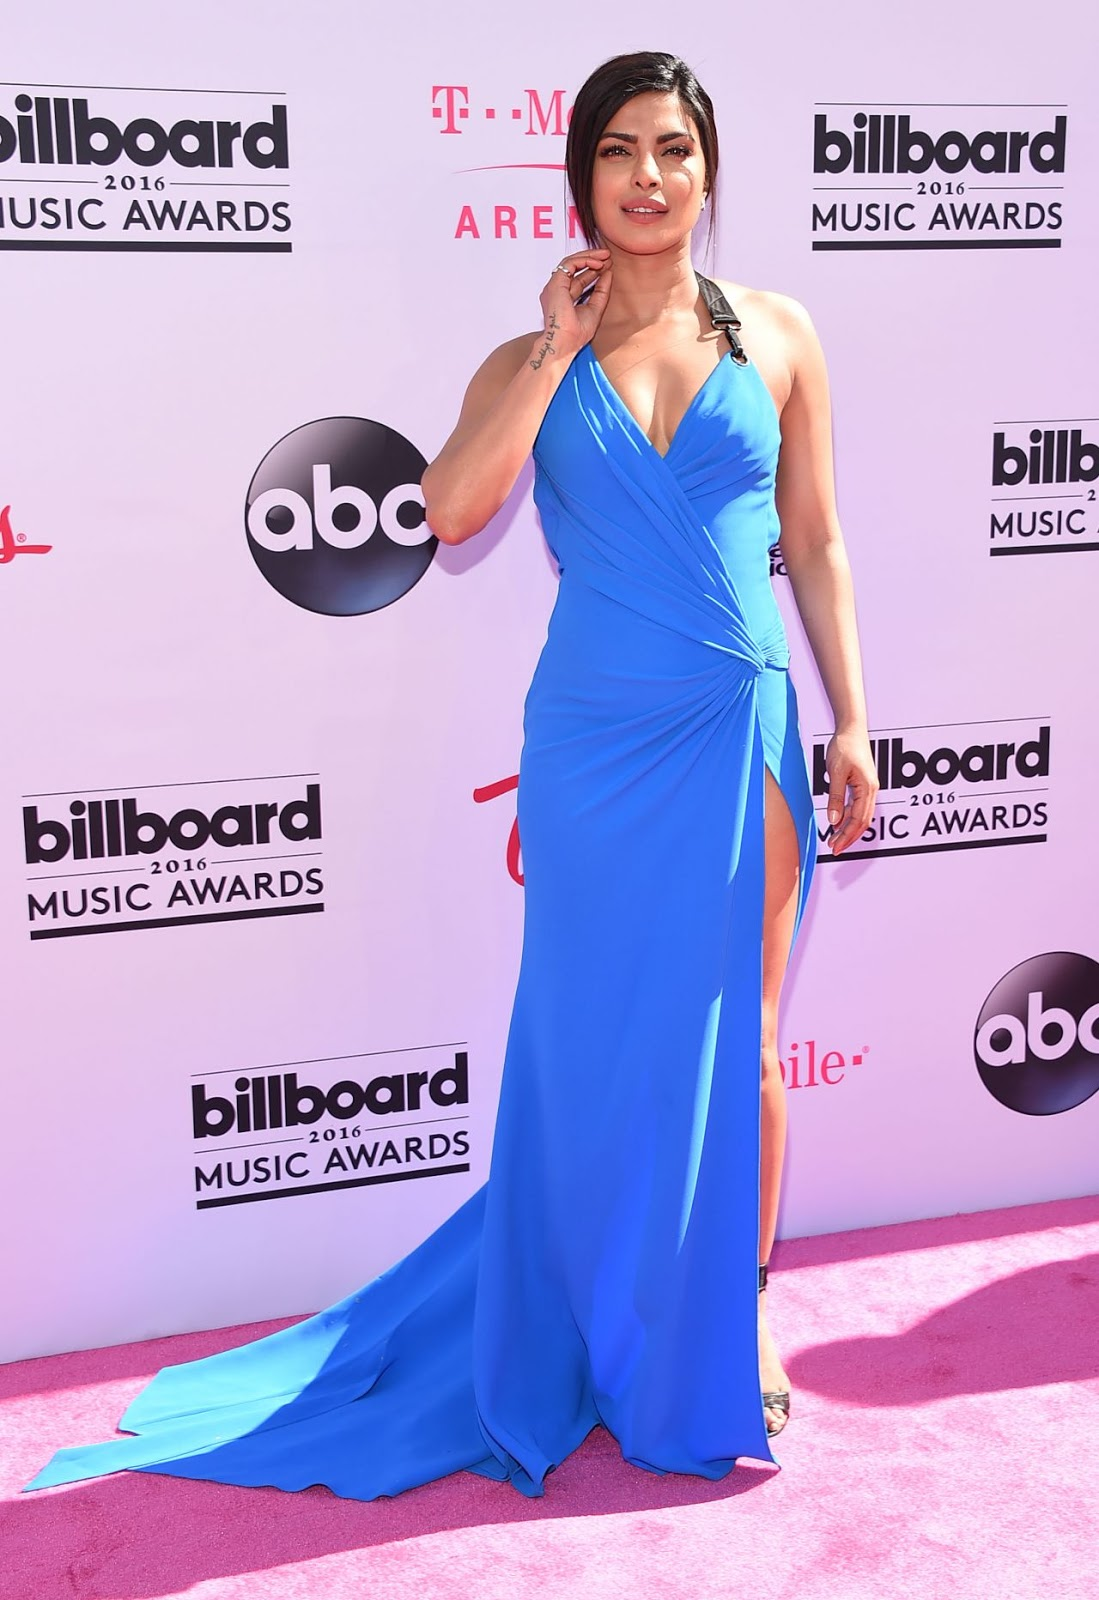 Priyanka Chopra slays in blue at the Billboard Music Awards 2016